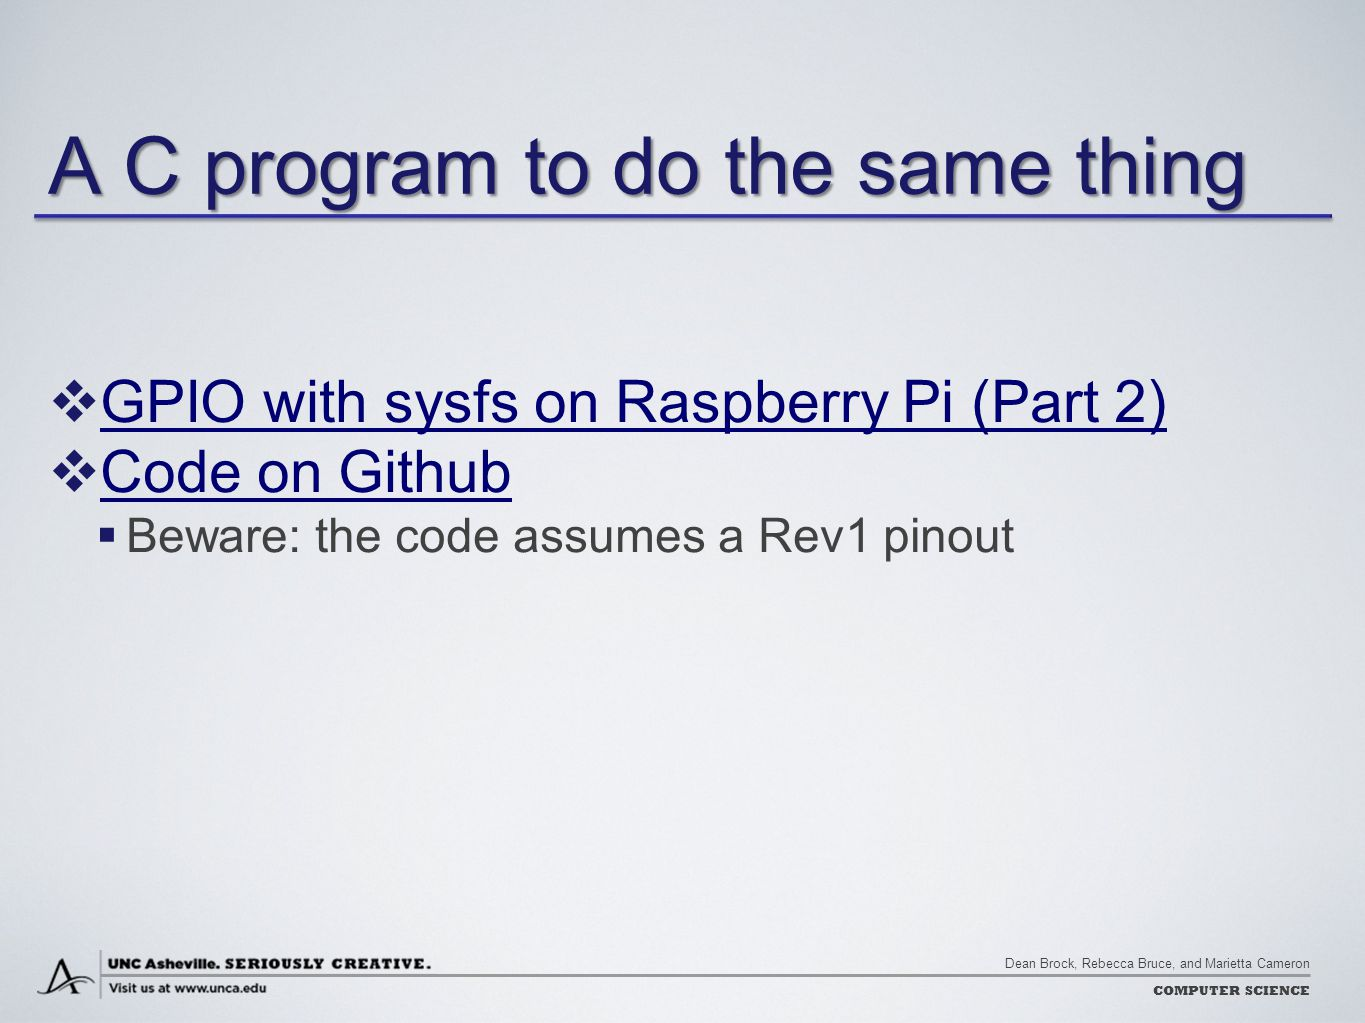 Dean Brock, Rebecca Bruce, and Marietta Cameron COMPUTER SCIENCE A C program to do the same thing  GPIO with sysfs on Raspberry Pi (Part 2) GPIO with sysfs on Raspberry Pi (Part 2)  Code on Github Code on Github  Beware: the code assumes a Rev1 pinout